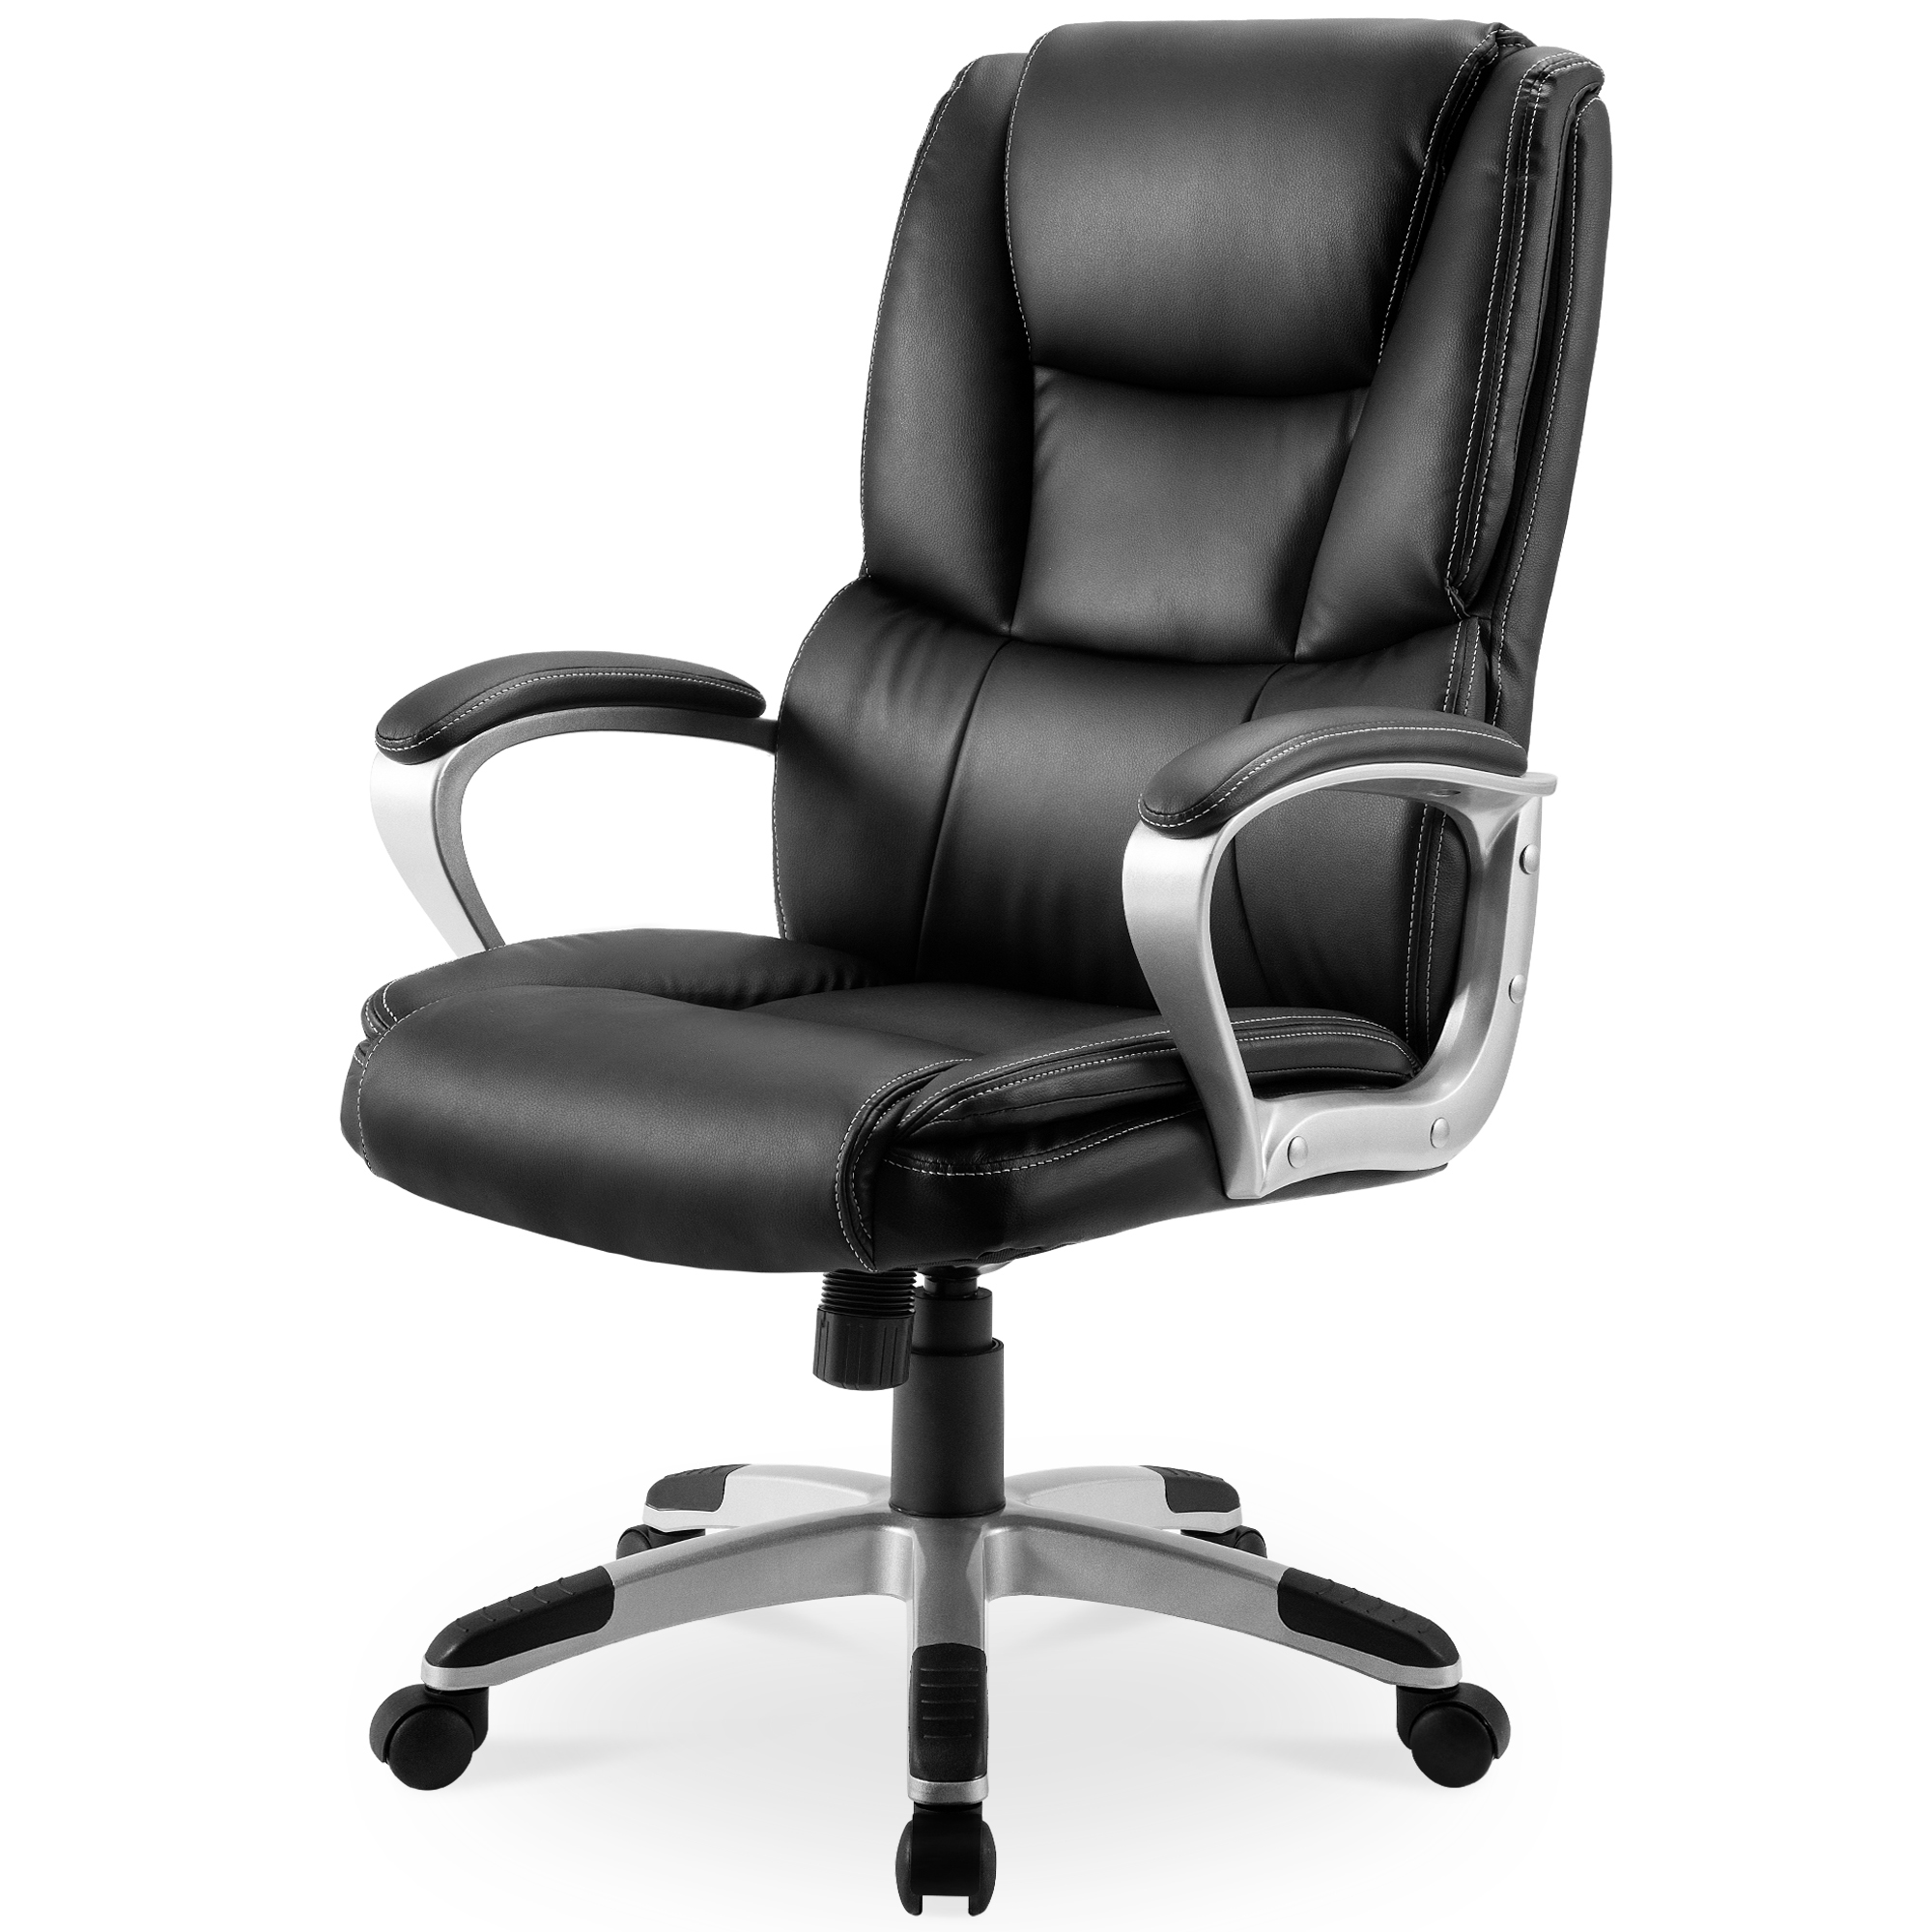 High-Back Leather Executive Swivel Office Computer Desk Chair, Adjustable Tilt Angle, Thick Padding For Comfort And Ergonomic